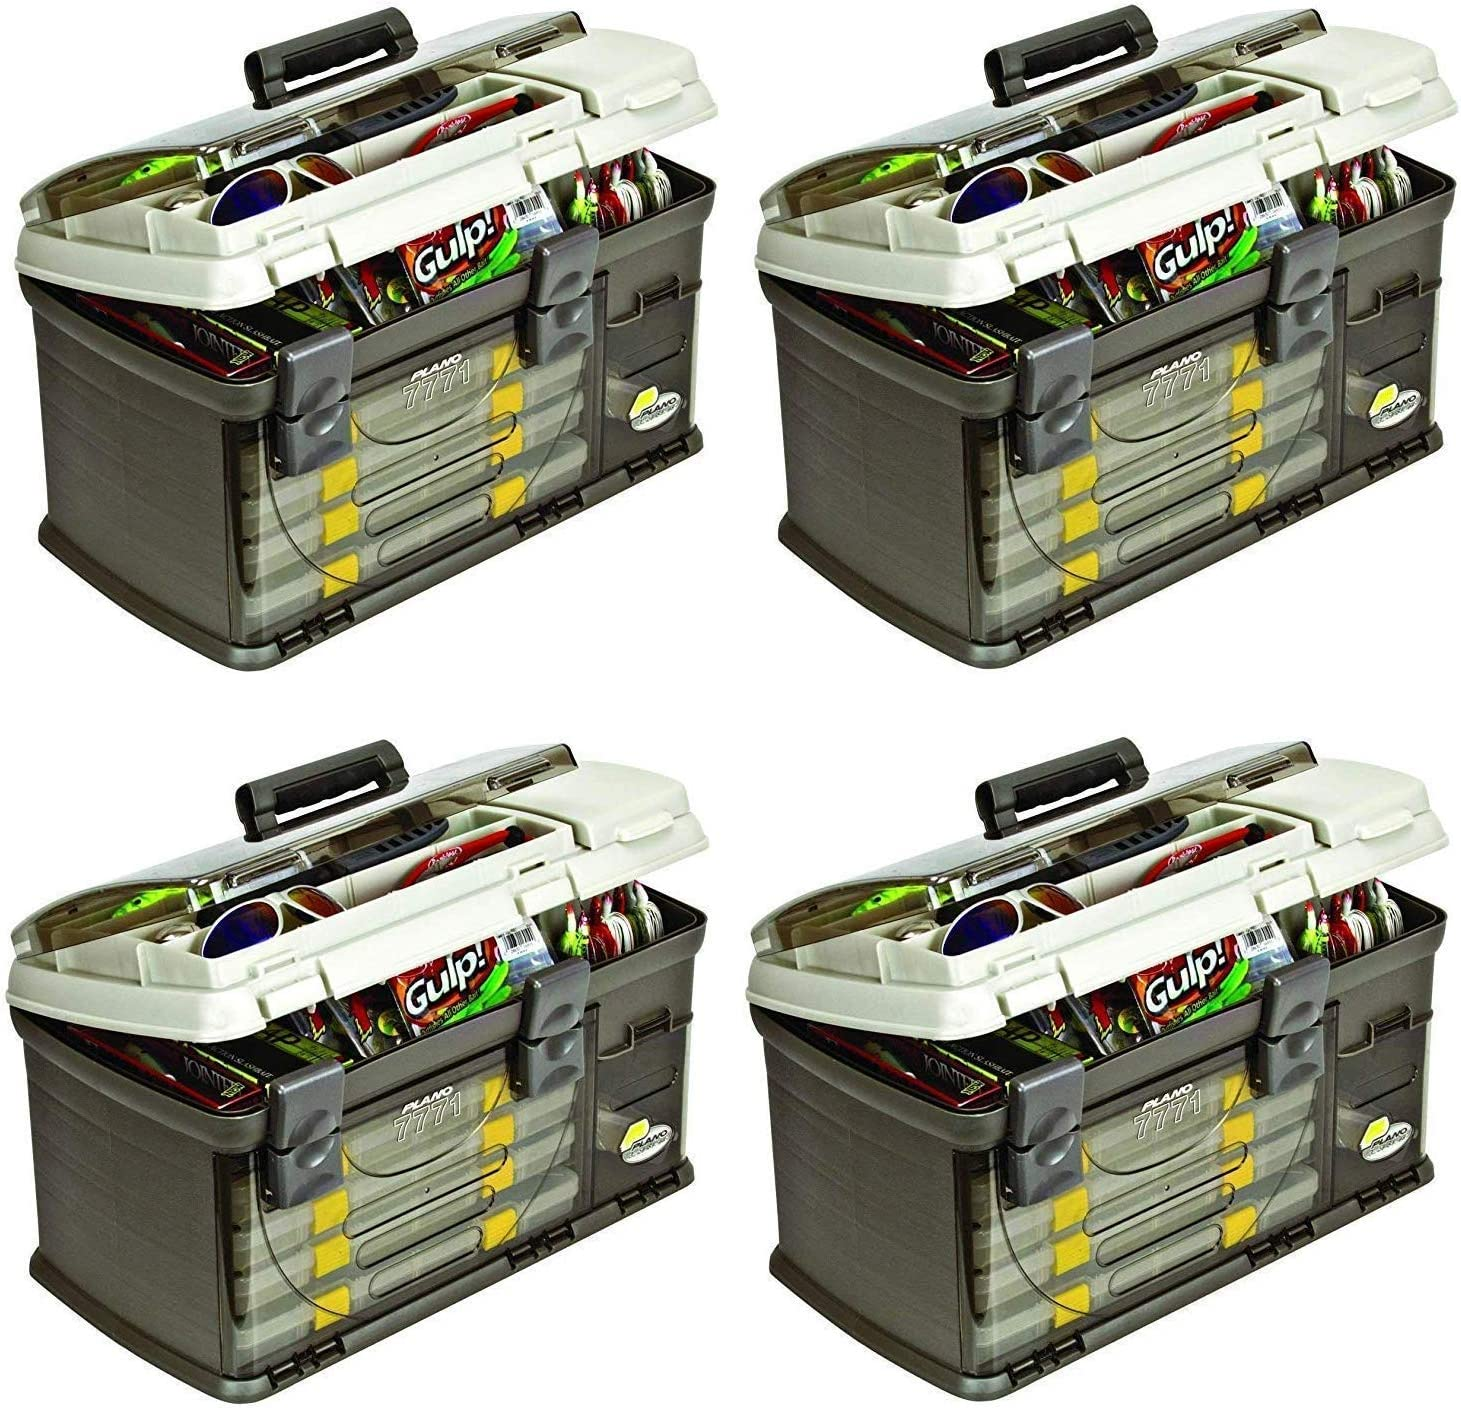 Plano 7771-01 Guide Series Tackle System Premium Tackle Storage